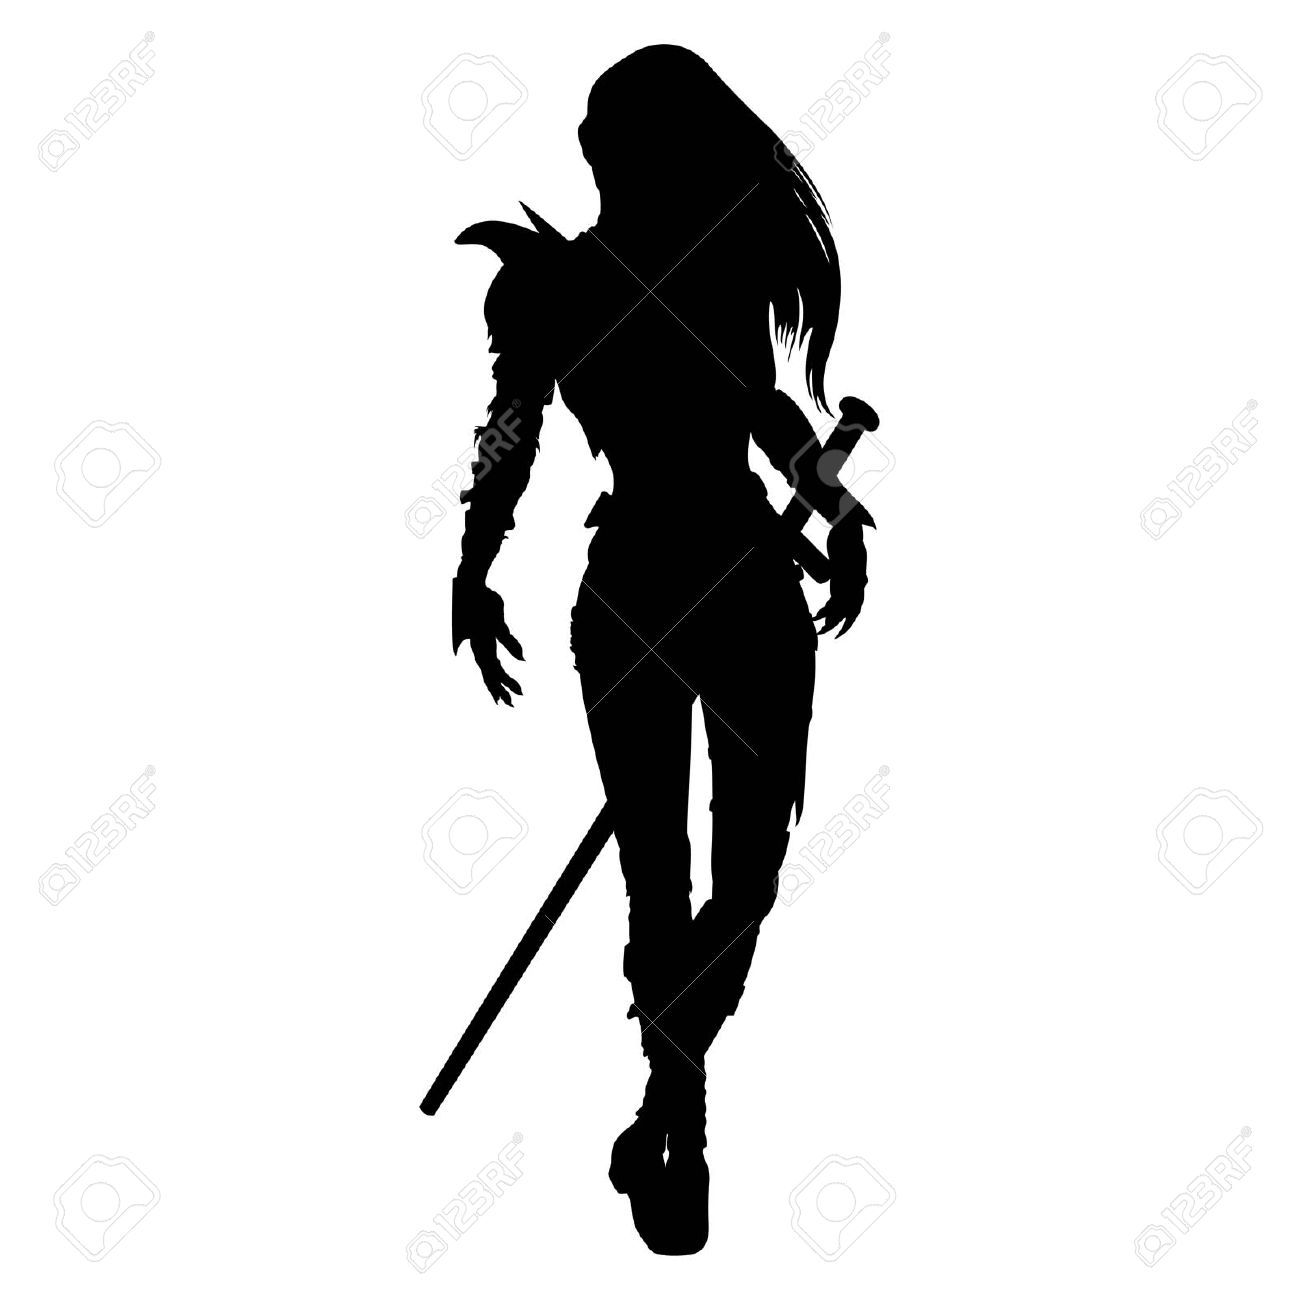 Warrior Cliparts, Stock Vector And Royalty Free Warrior.